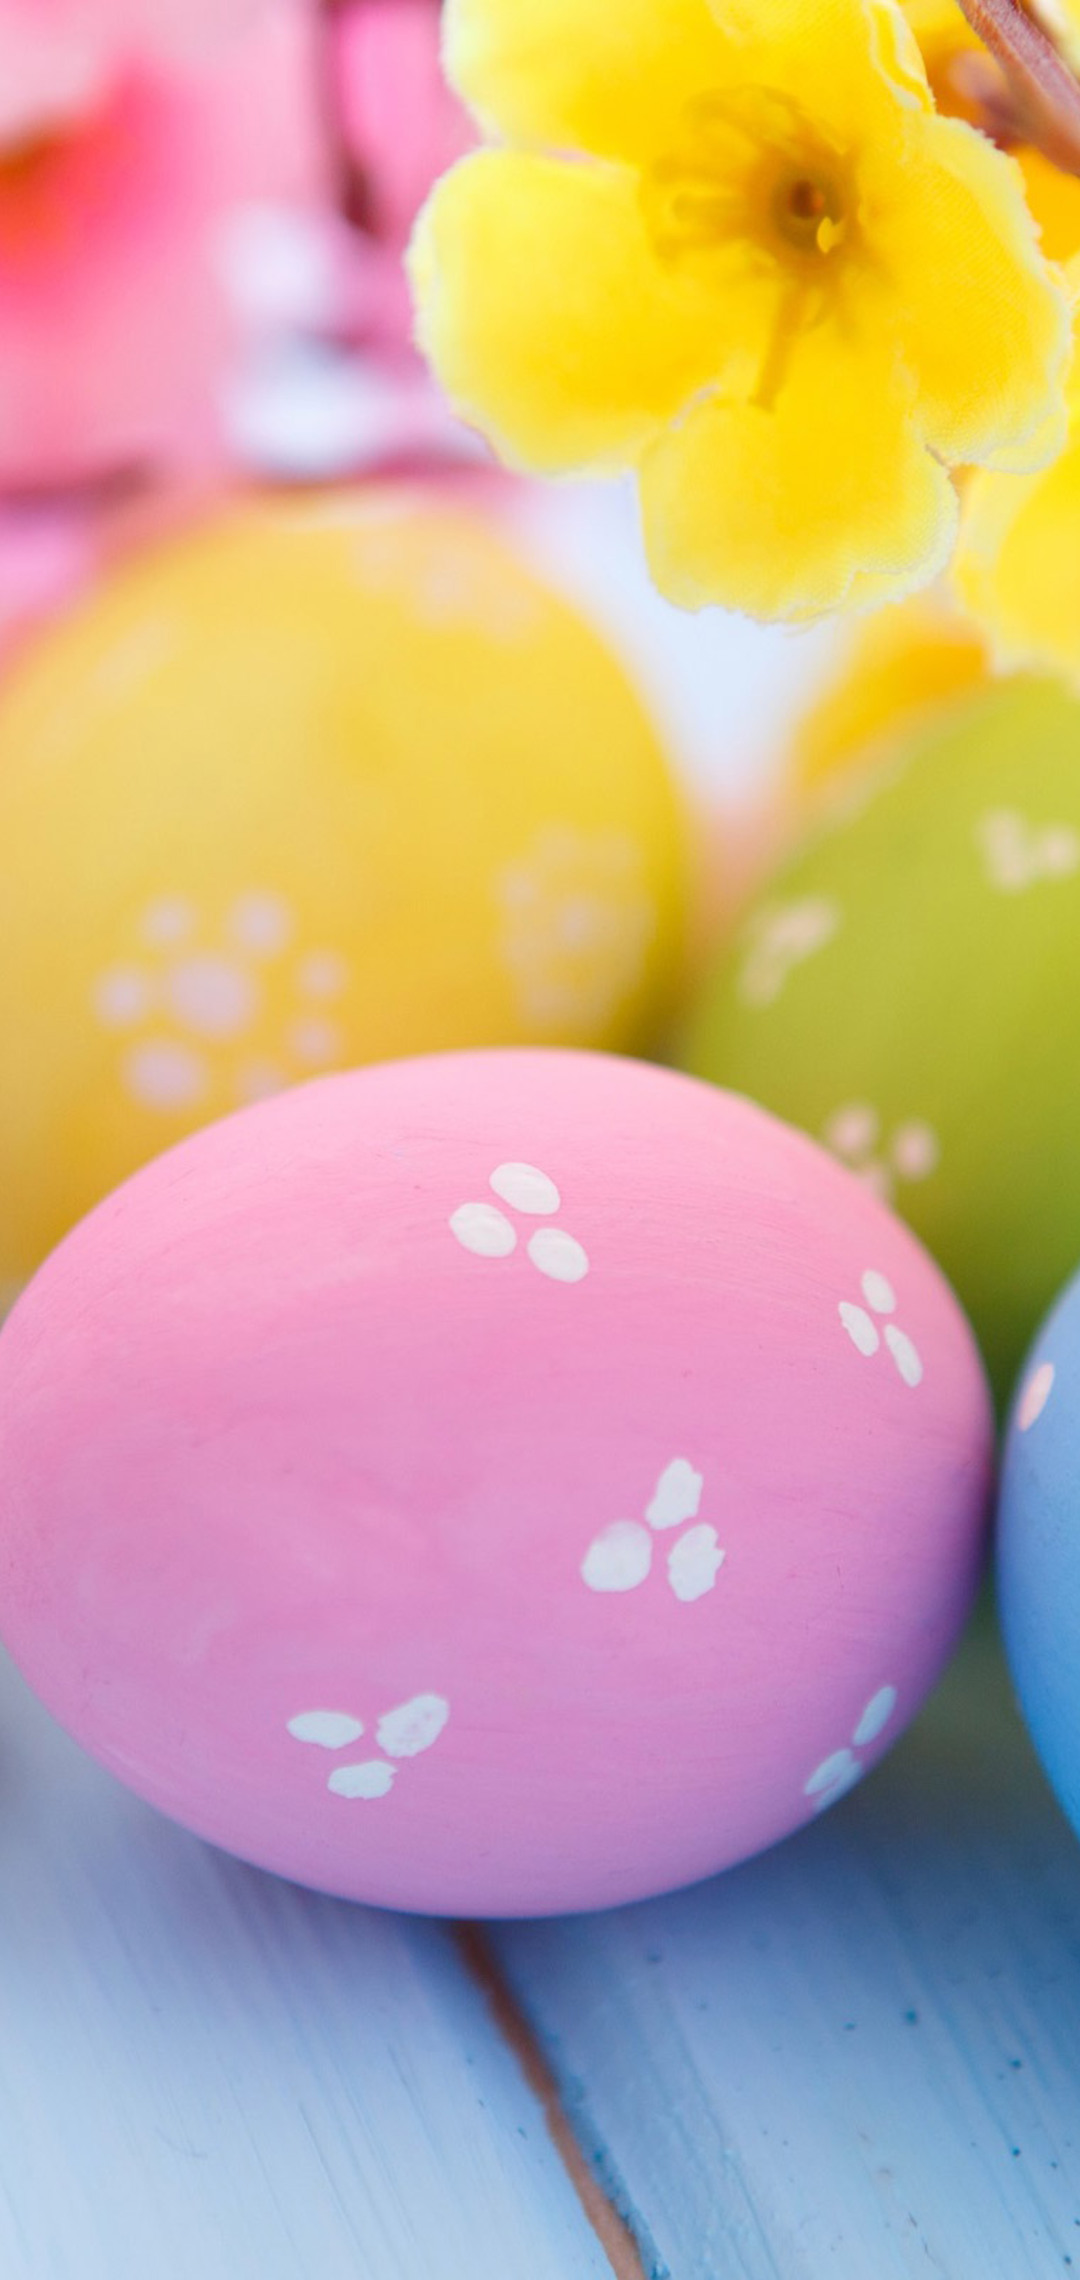 easter-eggs-and-spring-blossoms-ap.jpg